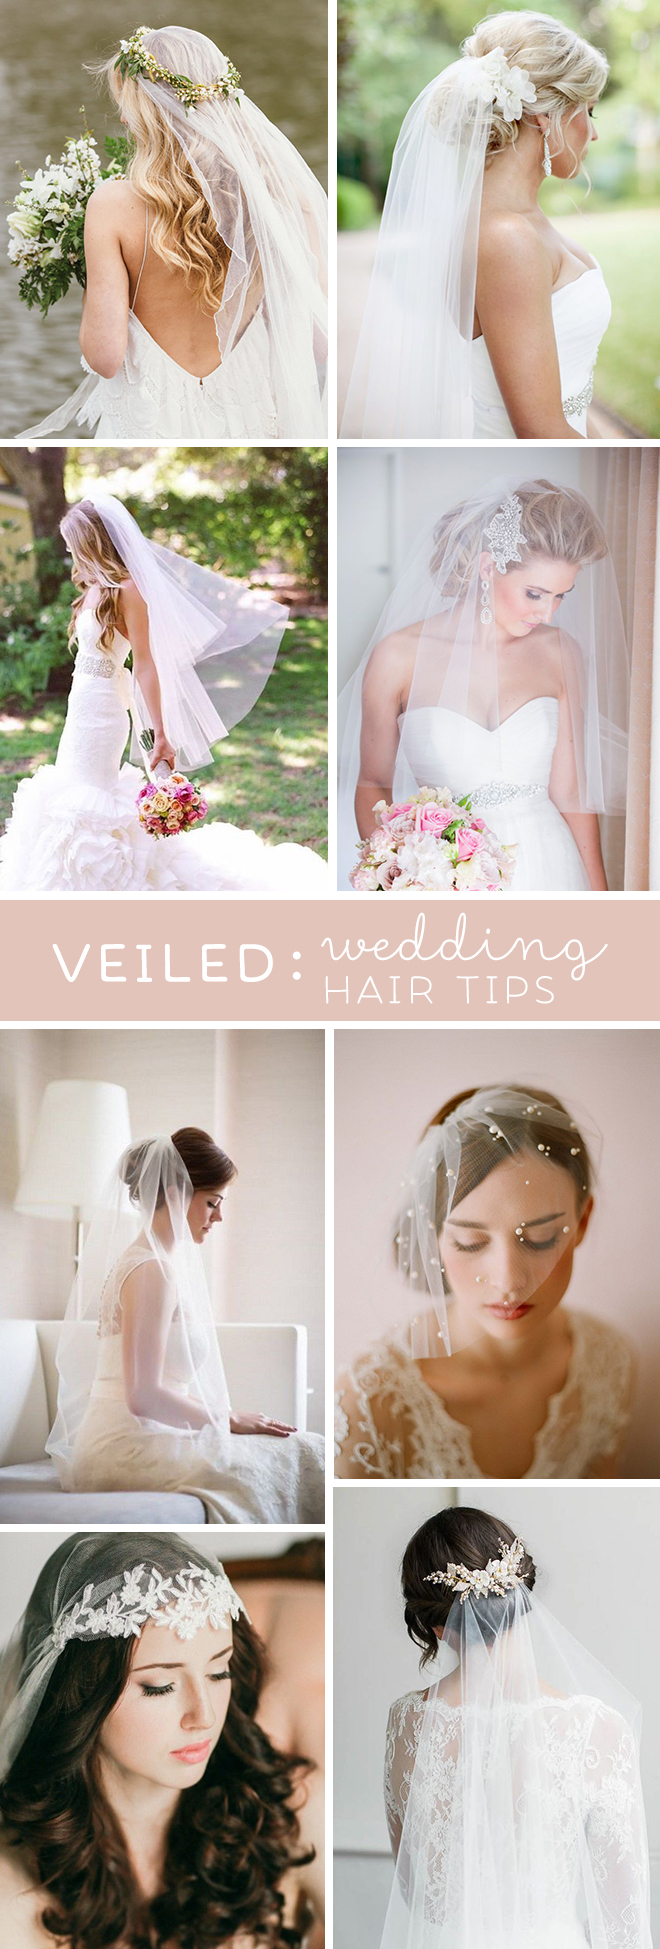 Veiled-Wedding-Hair-Tips